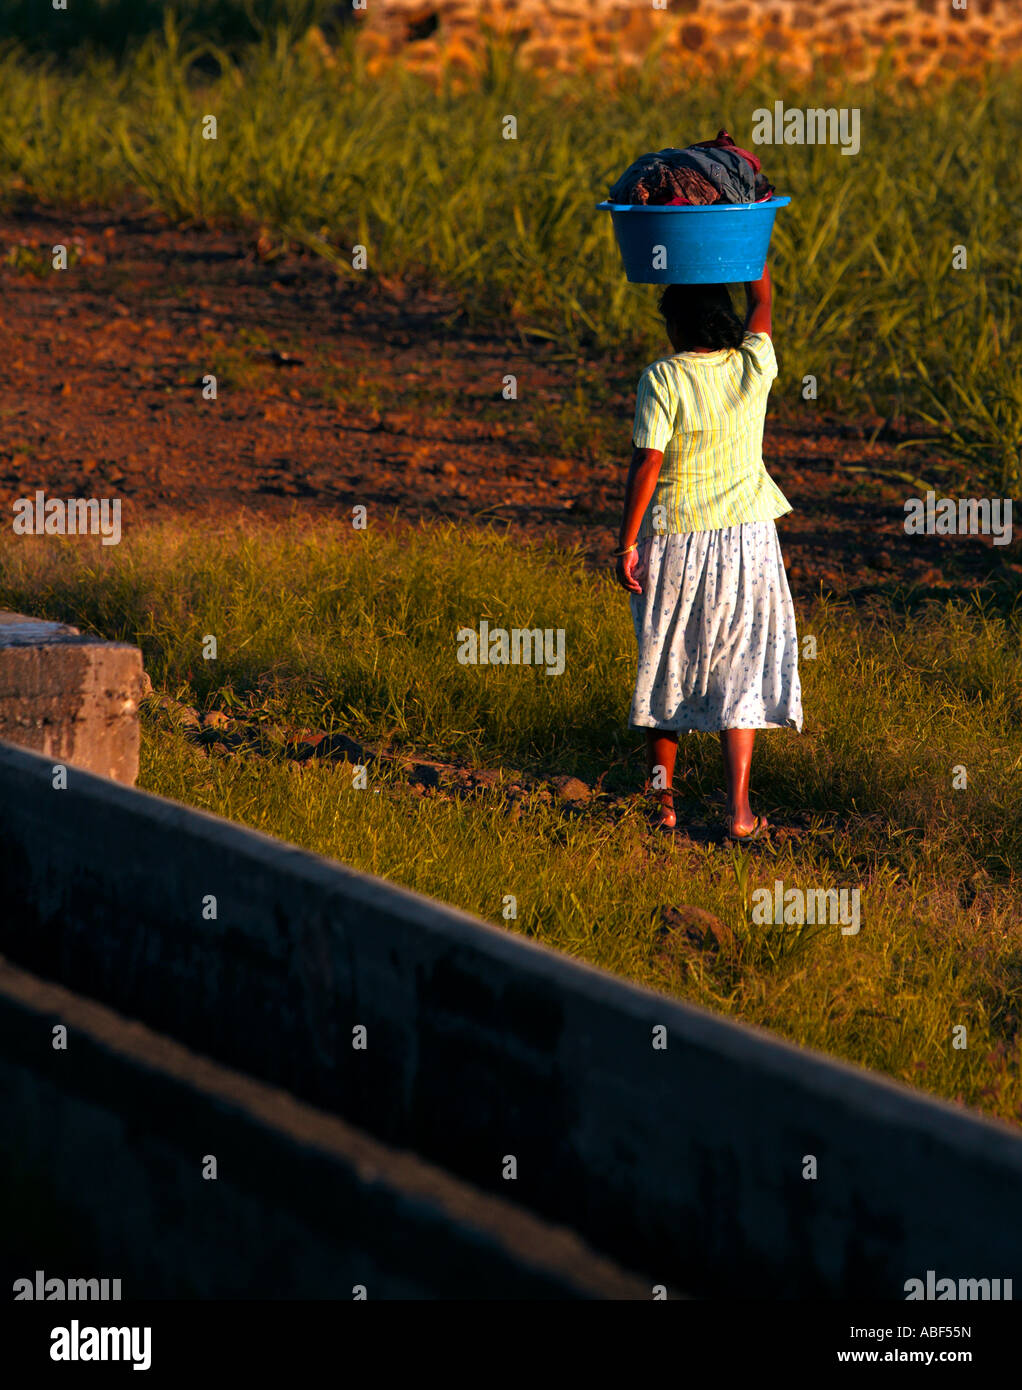 Lady returns home with the family's washing - Mauritius. Stock Photo